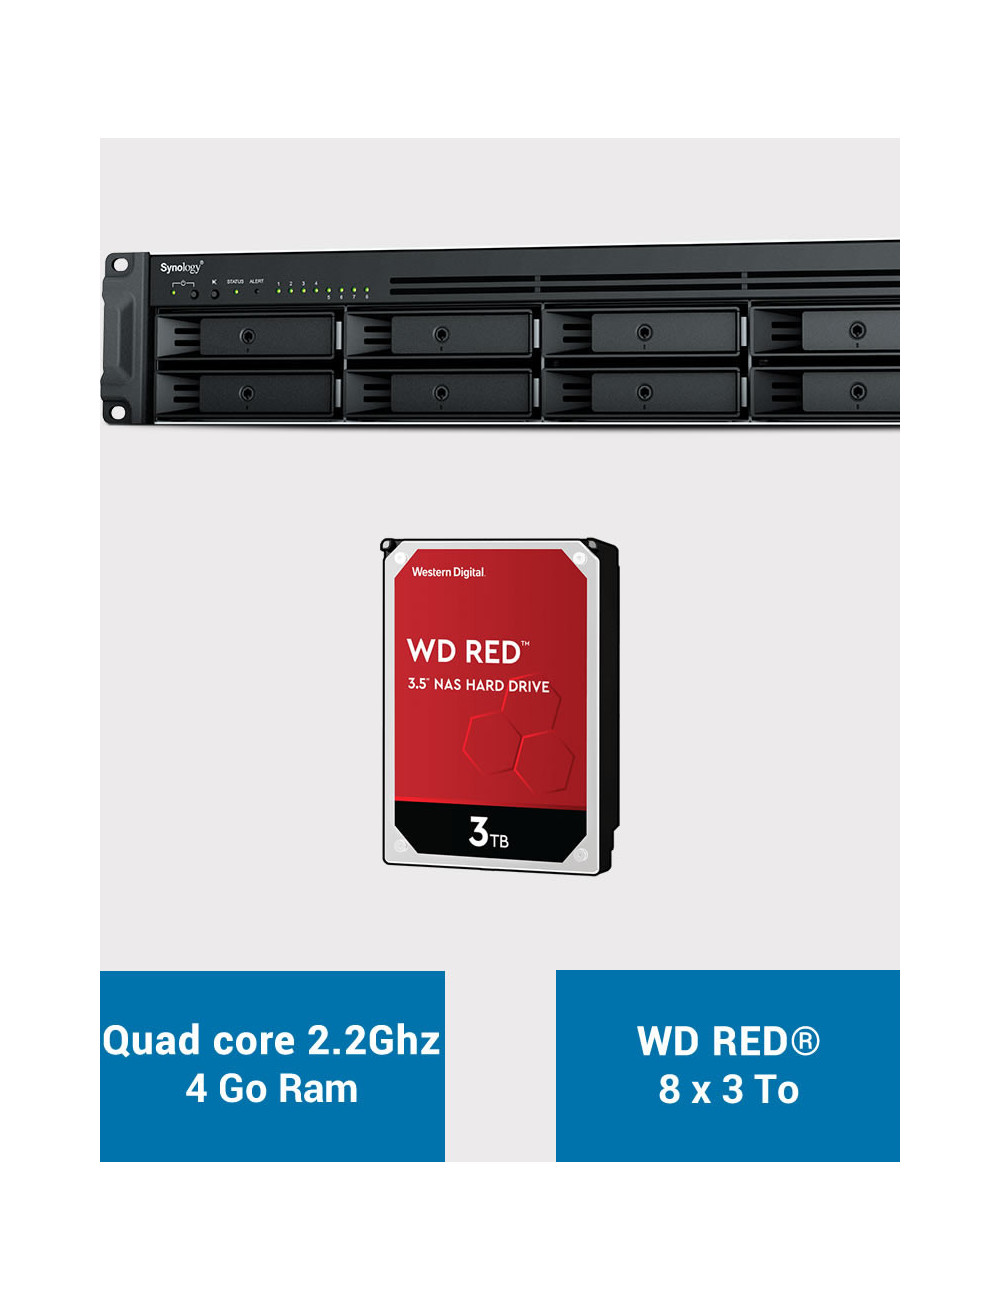 Synology RS1221+ Serveur NAS Rack WD RED 24To (8x3To)